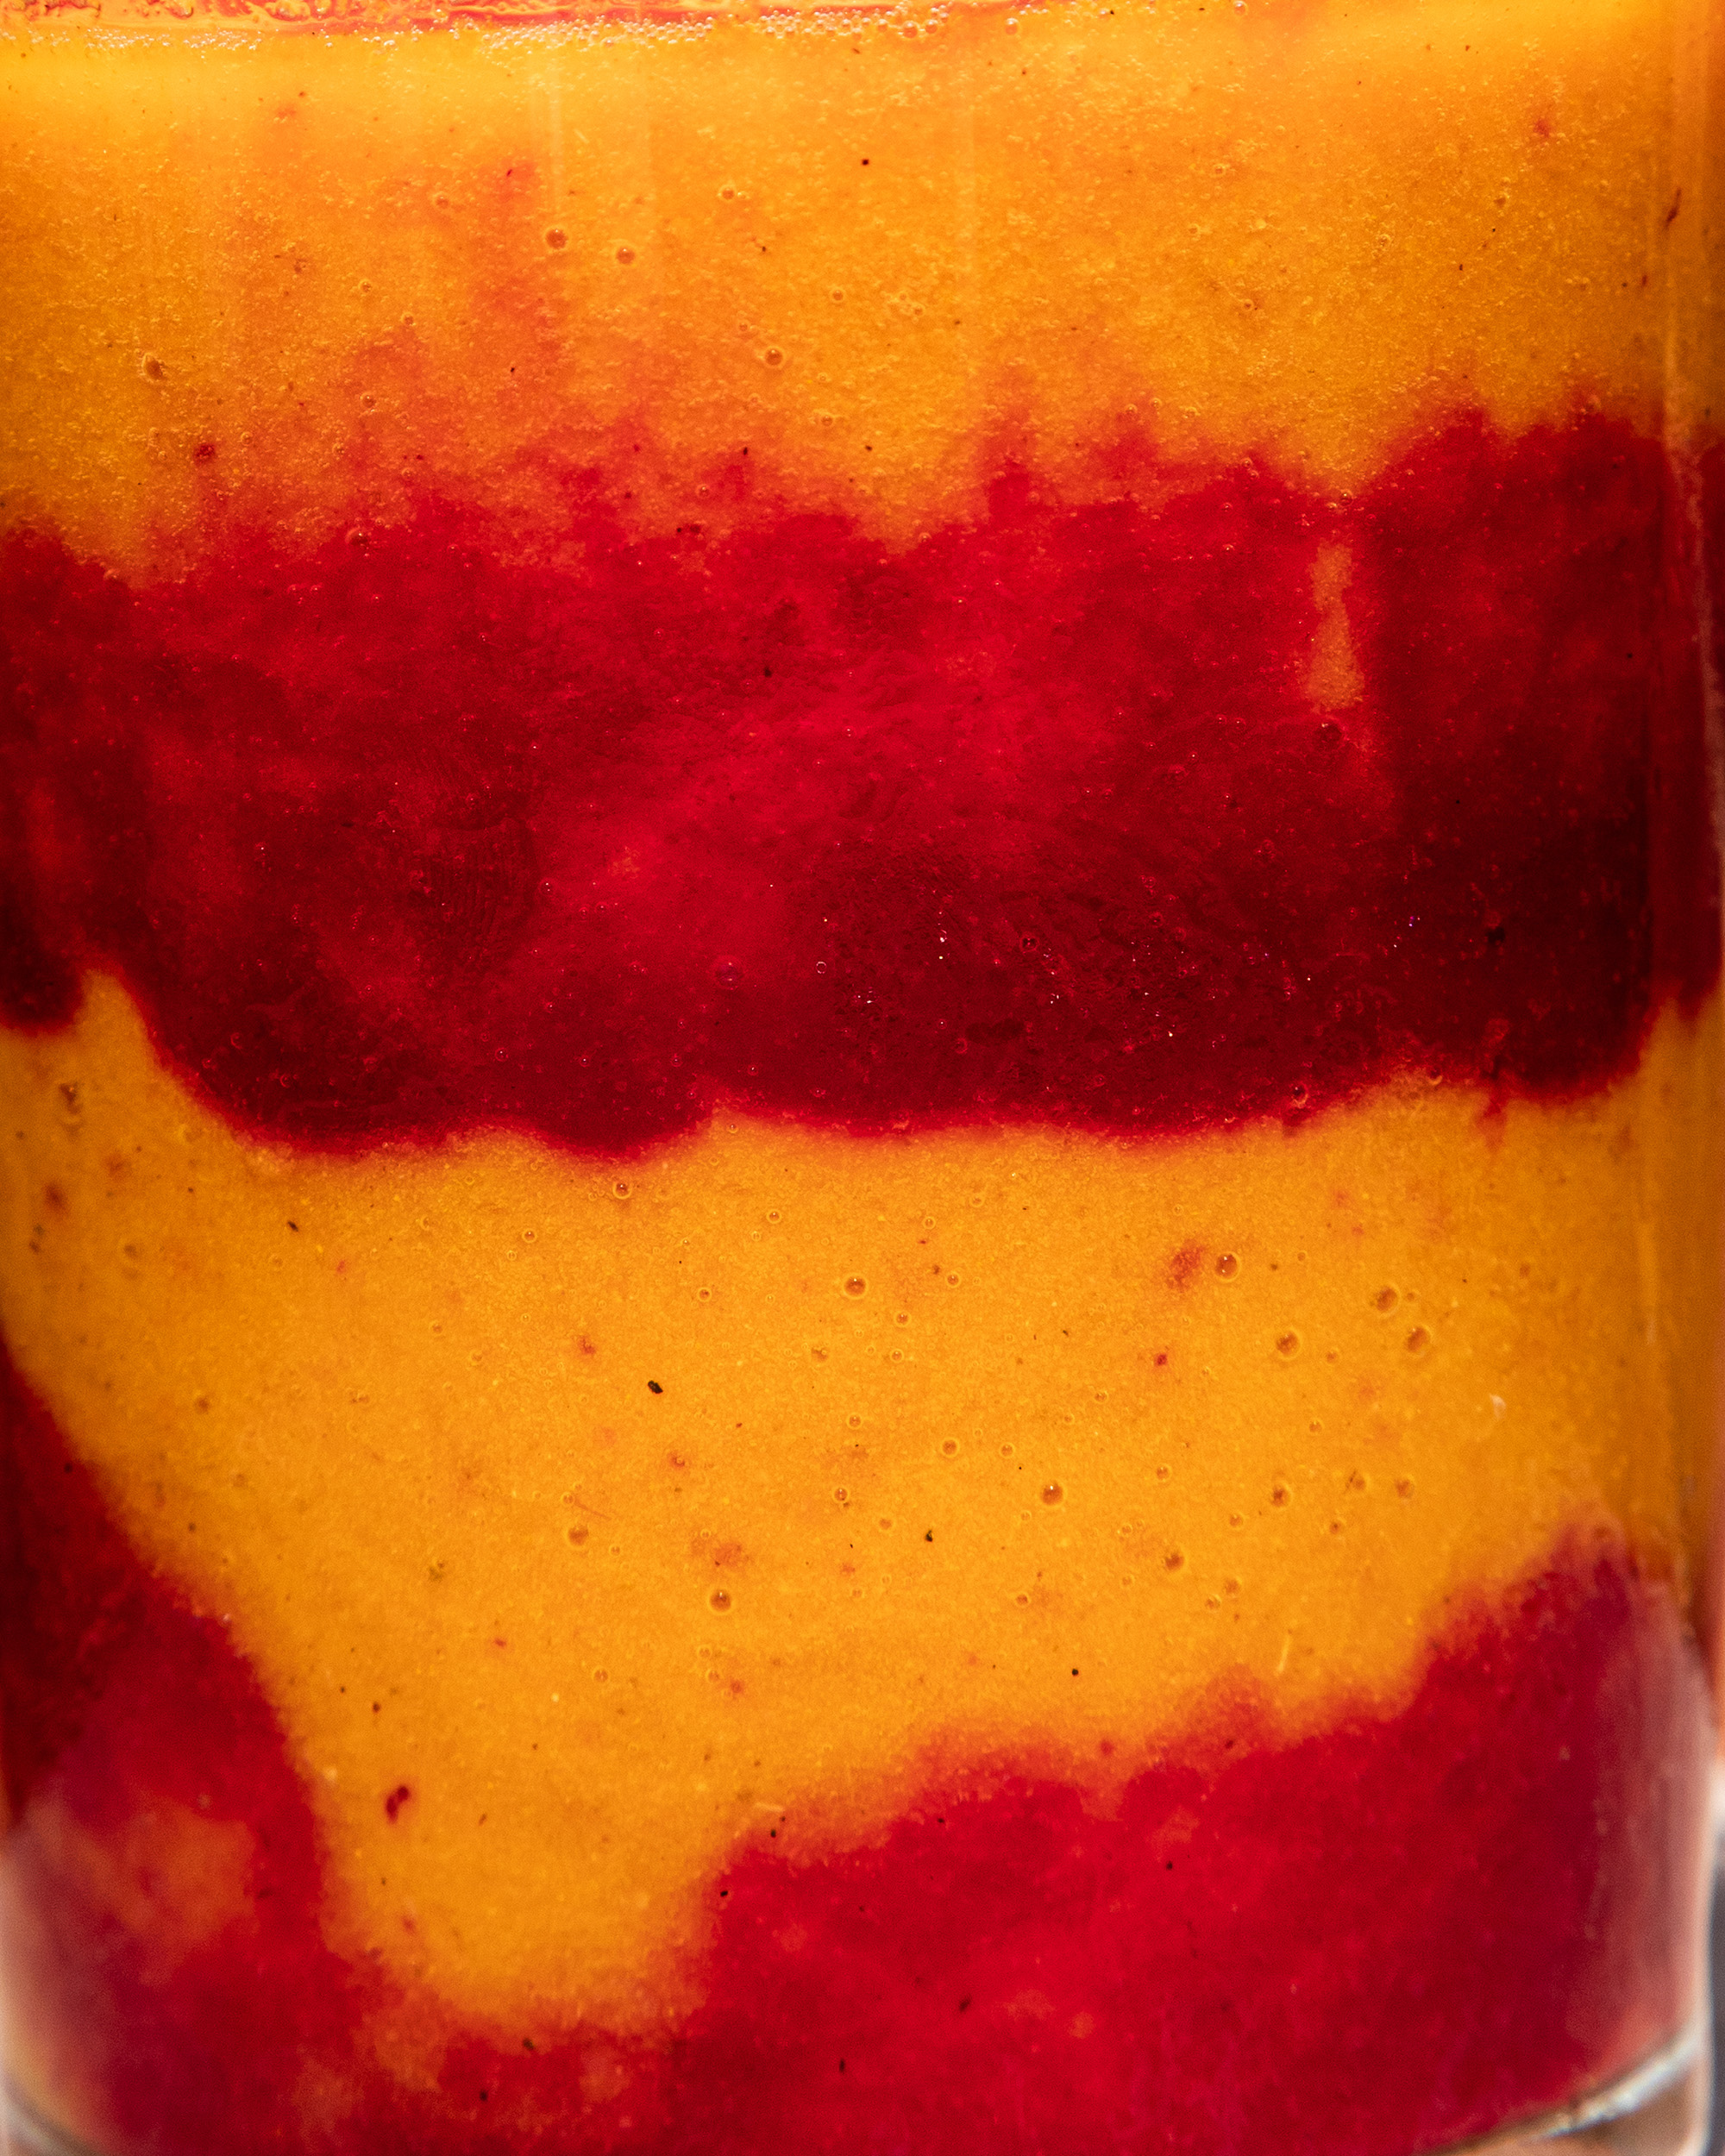 An extremely up close shot of orange and magenta smoothie layers in a clear glass.